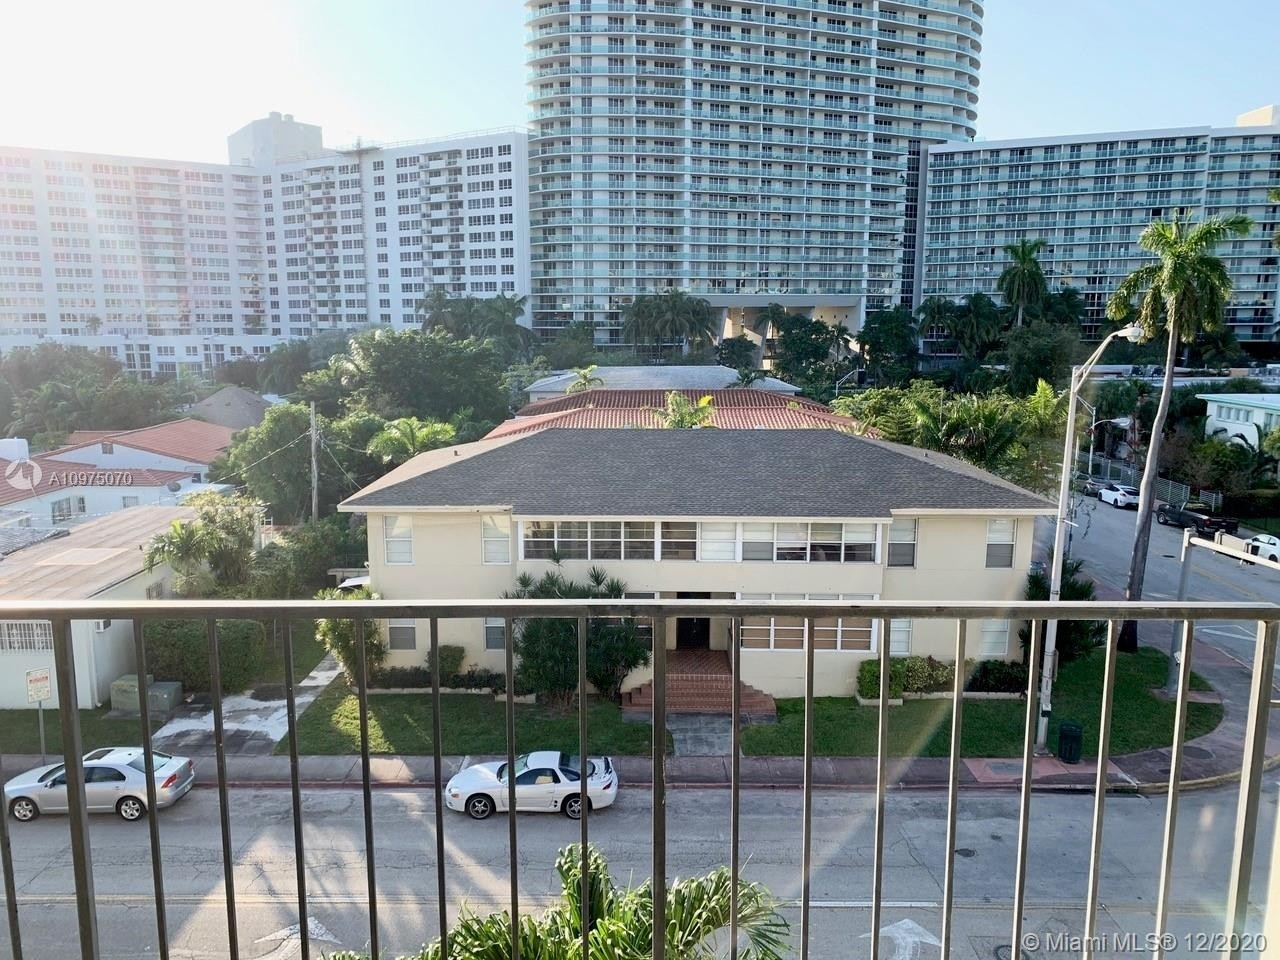 32. Condominiums for Sale at 1455 West Ave , 504 South Beach, Miami Beach, FL 33139